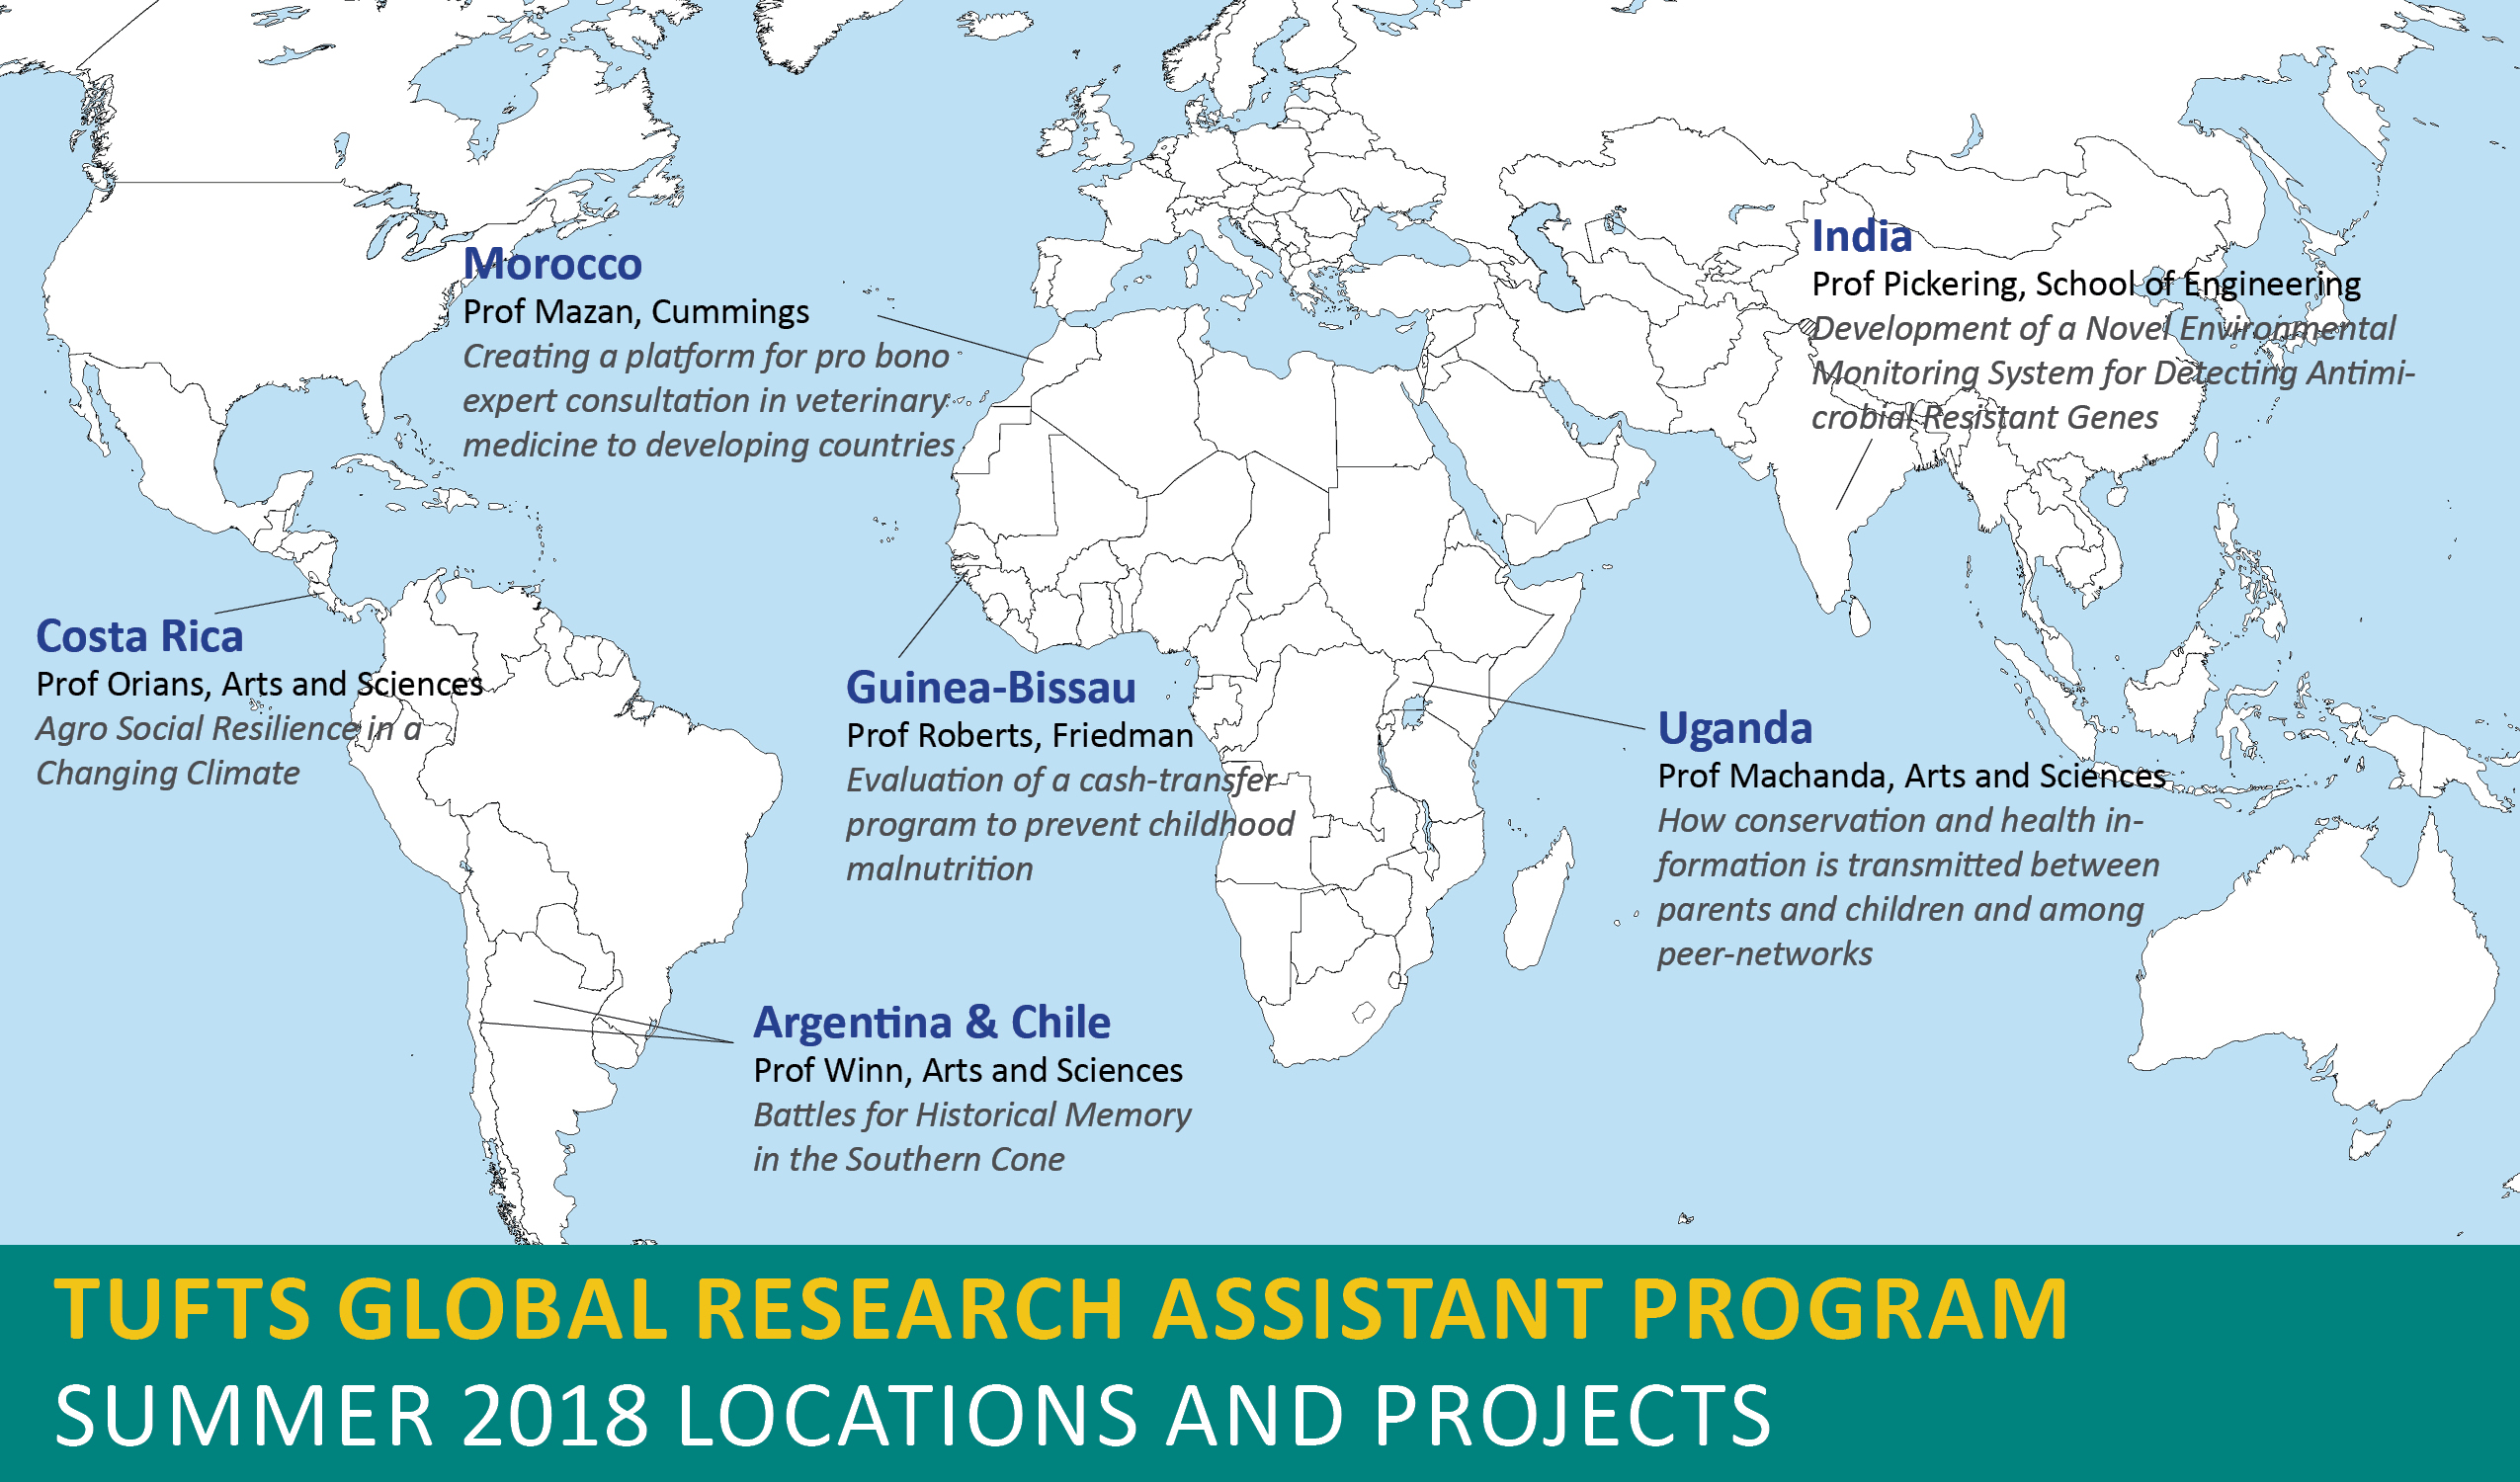 Global Research Assistant Program